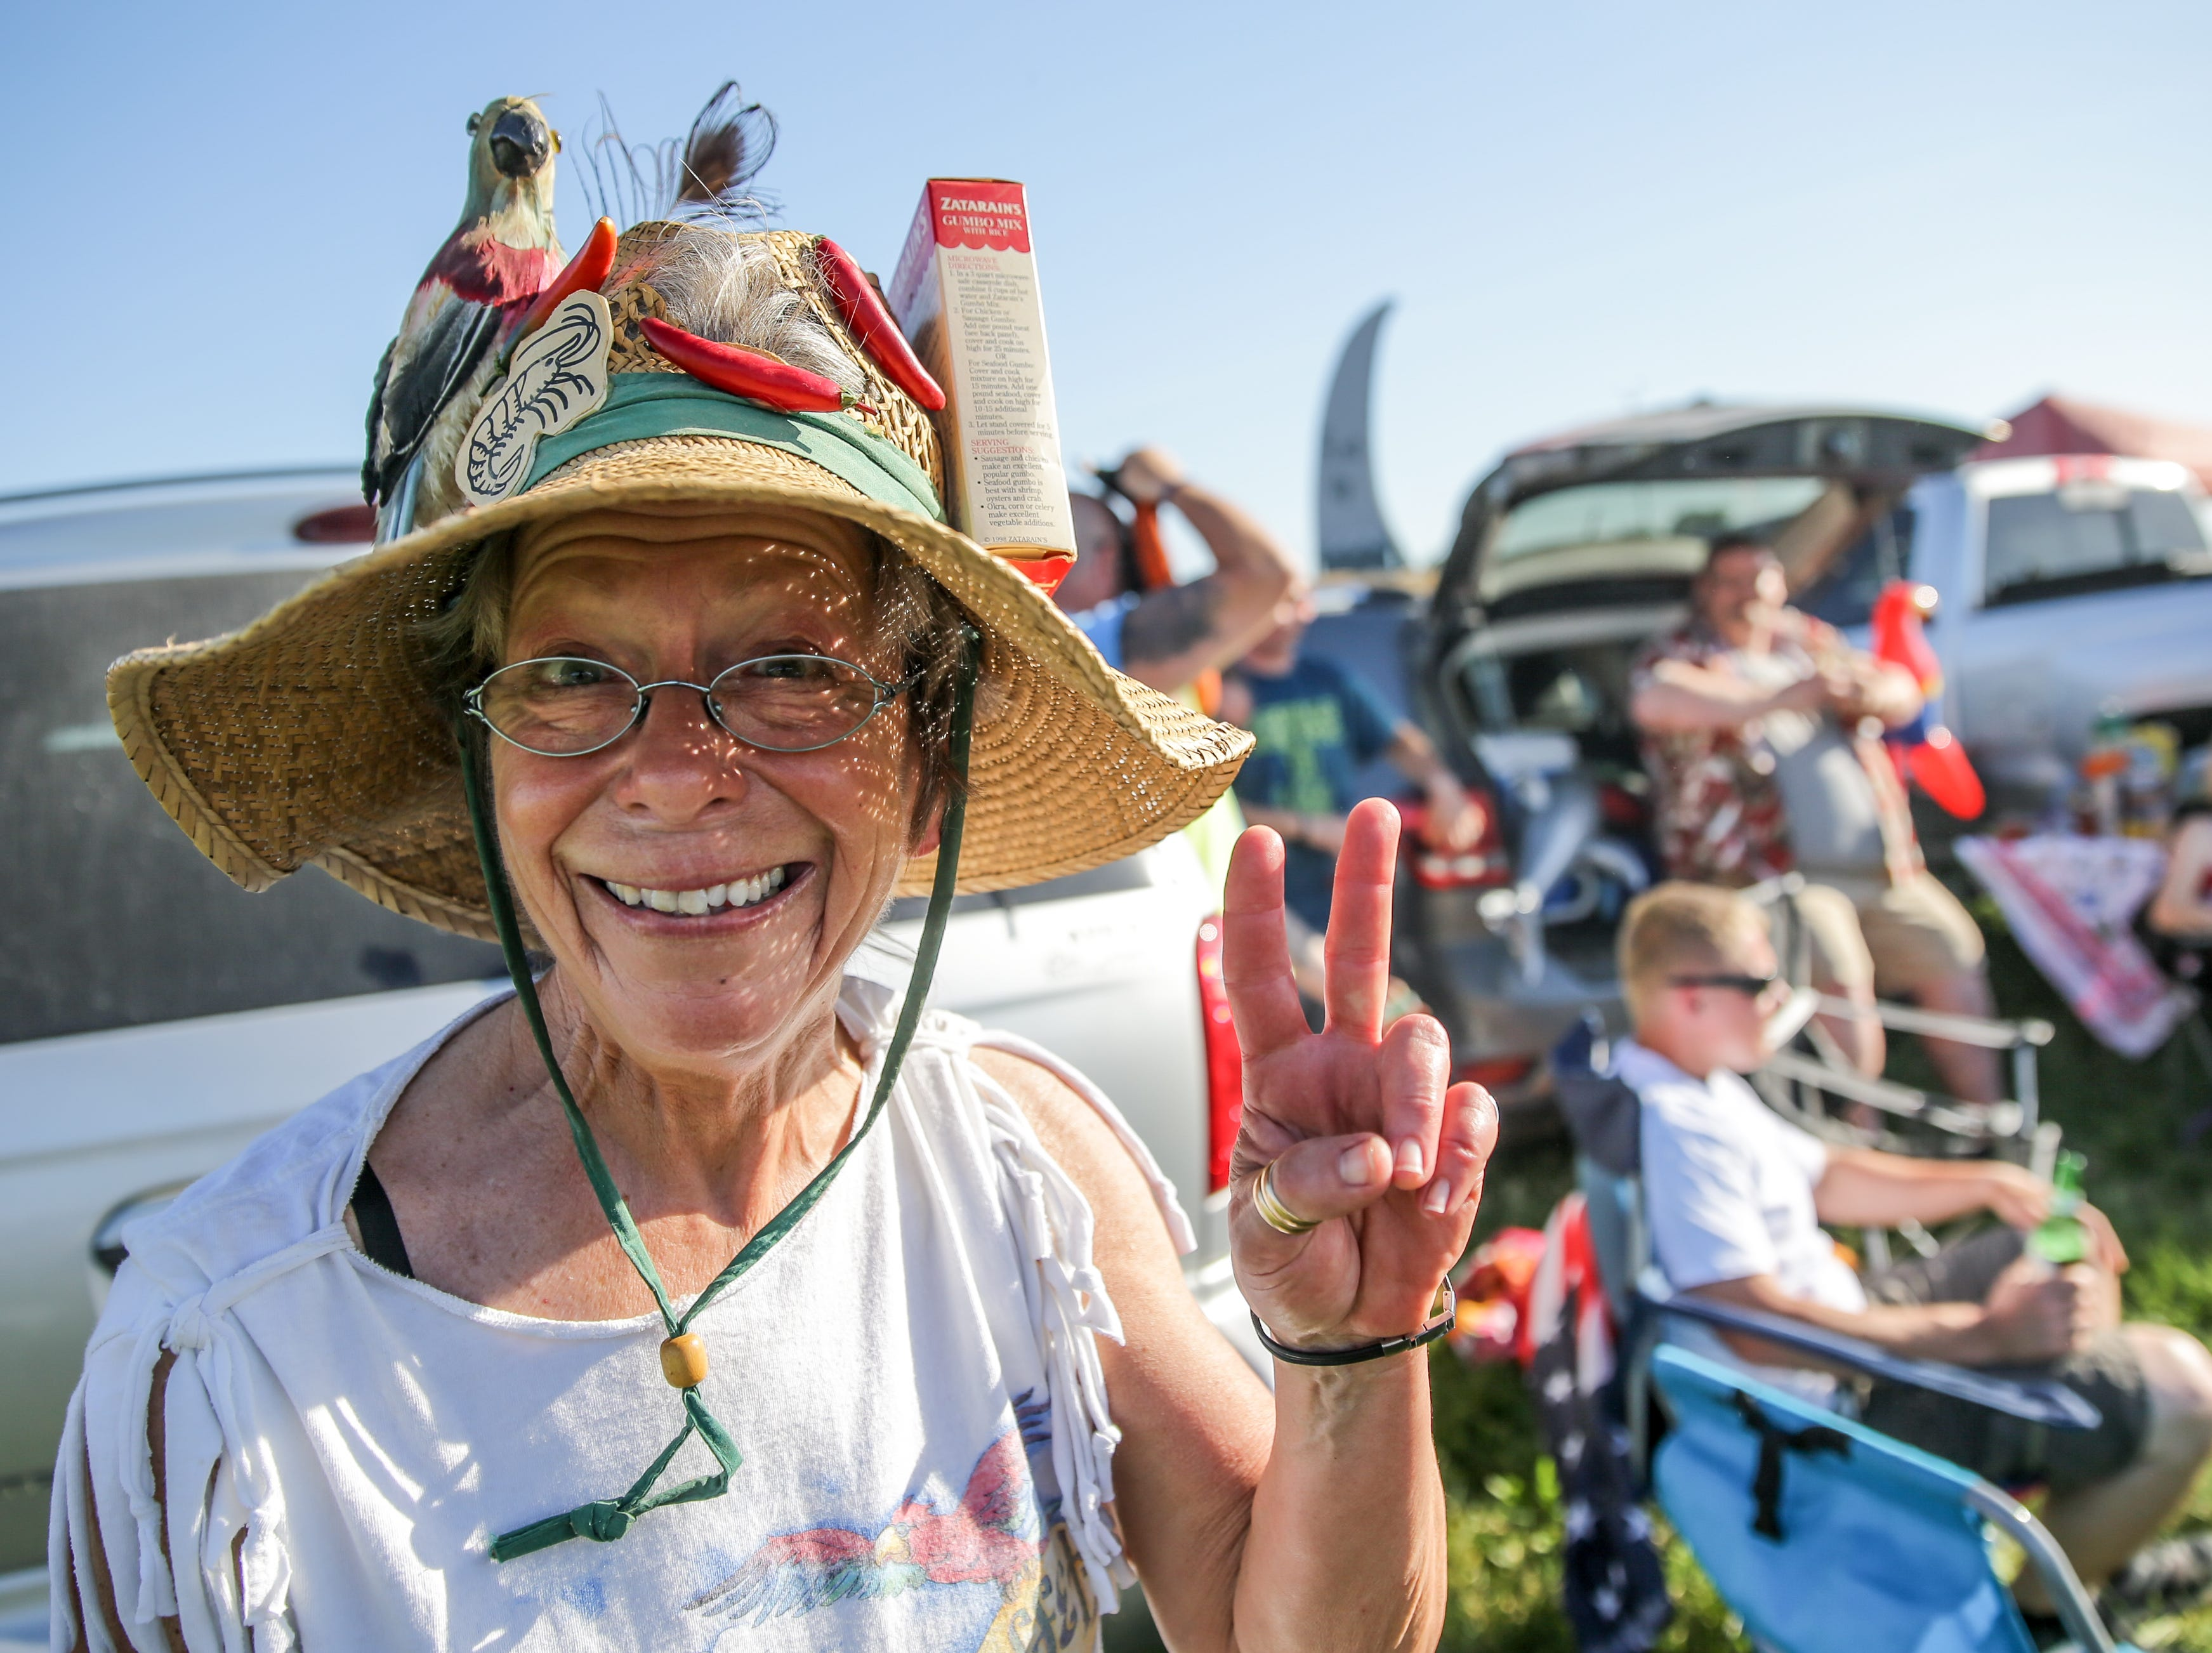 Amy Vandergrift tailgates before the Jimmy Buffett and the Coral Reefer Band performance at Ruoff Home Mortgage Music Center in Noblesville Ind. on Thursday, May 24, 2018.